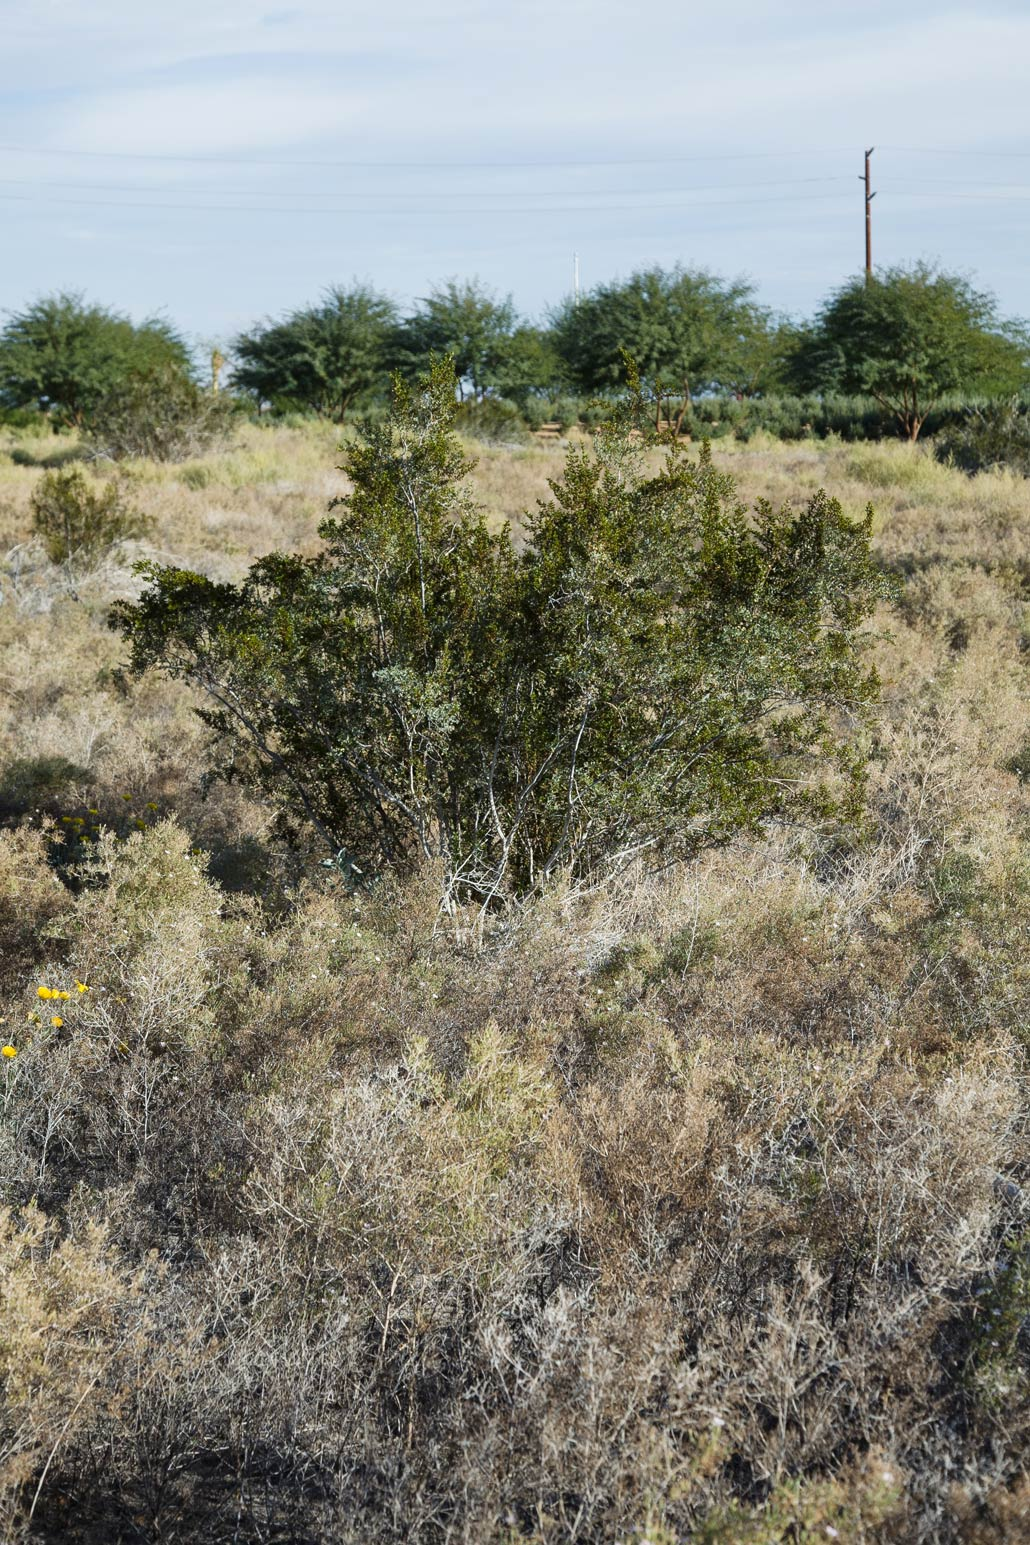 A Creosote bush in the Wildflower Field at Sunnylands Center & Gardens.